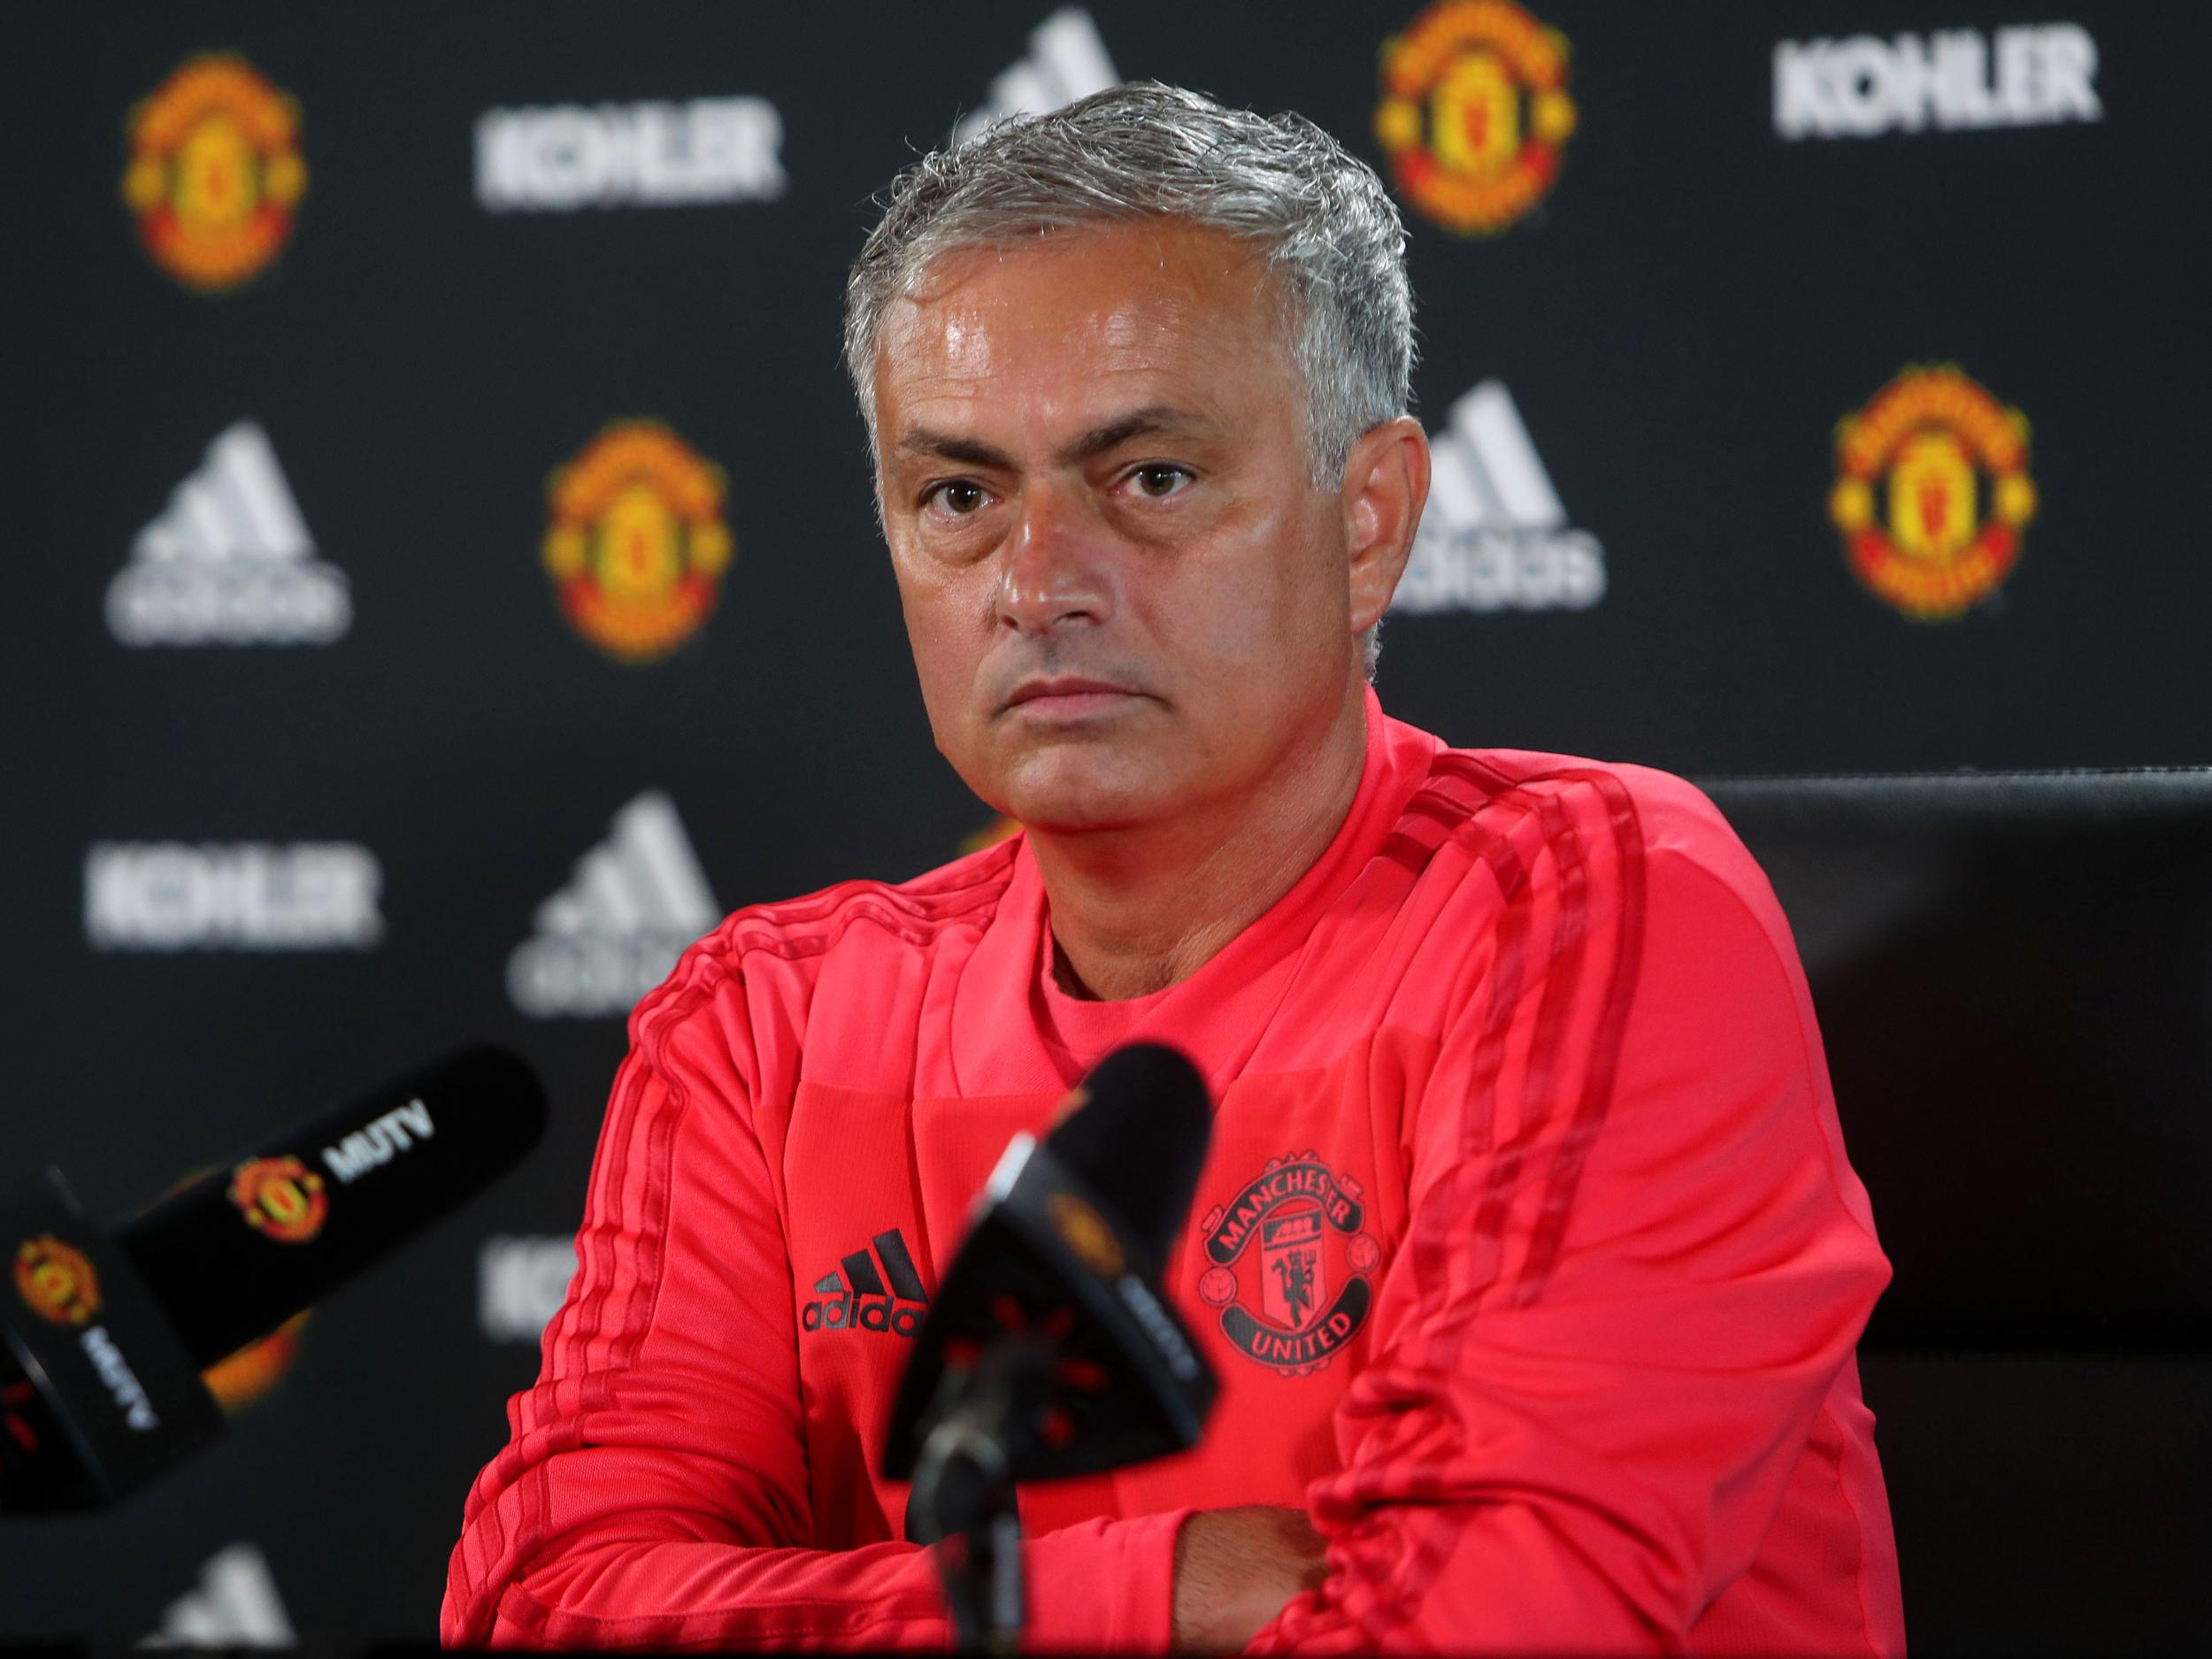 Jose Mourinho hits back at Jamie Carragher over Marcus Rasford claim with list of Manchester United stats